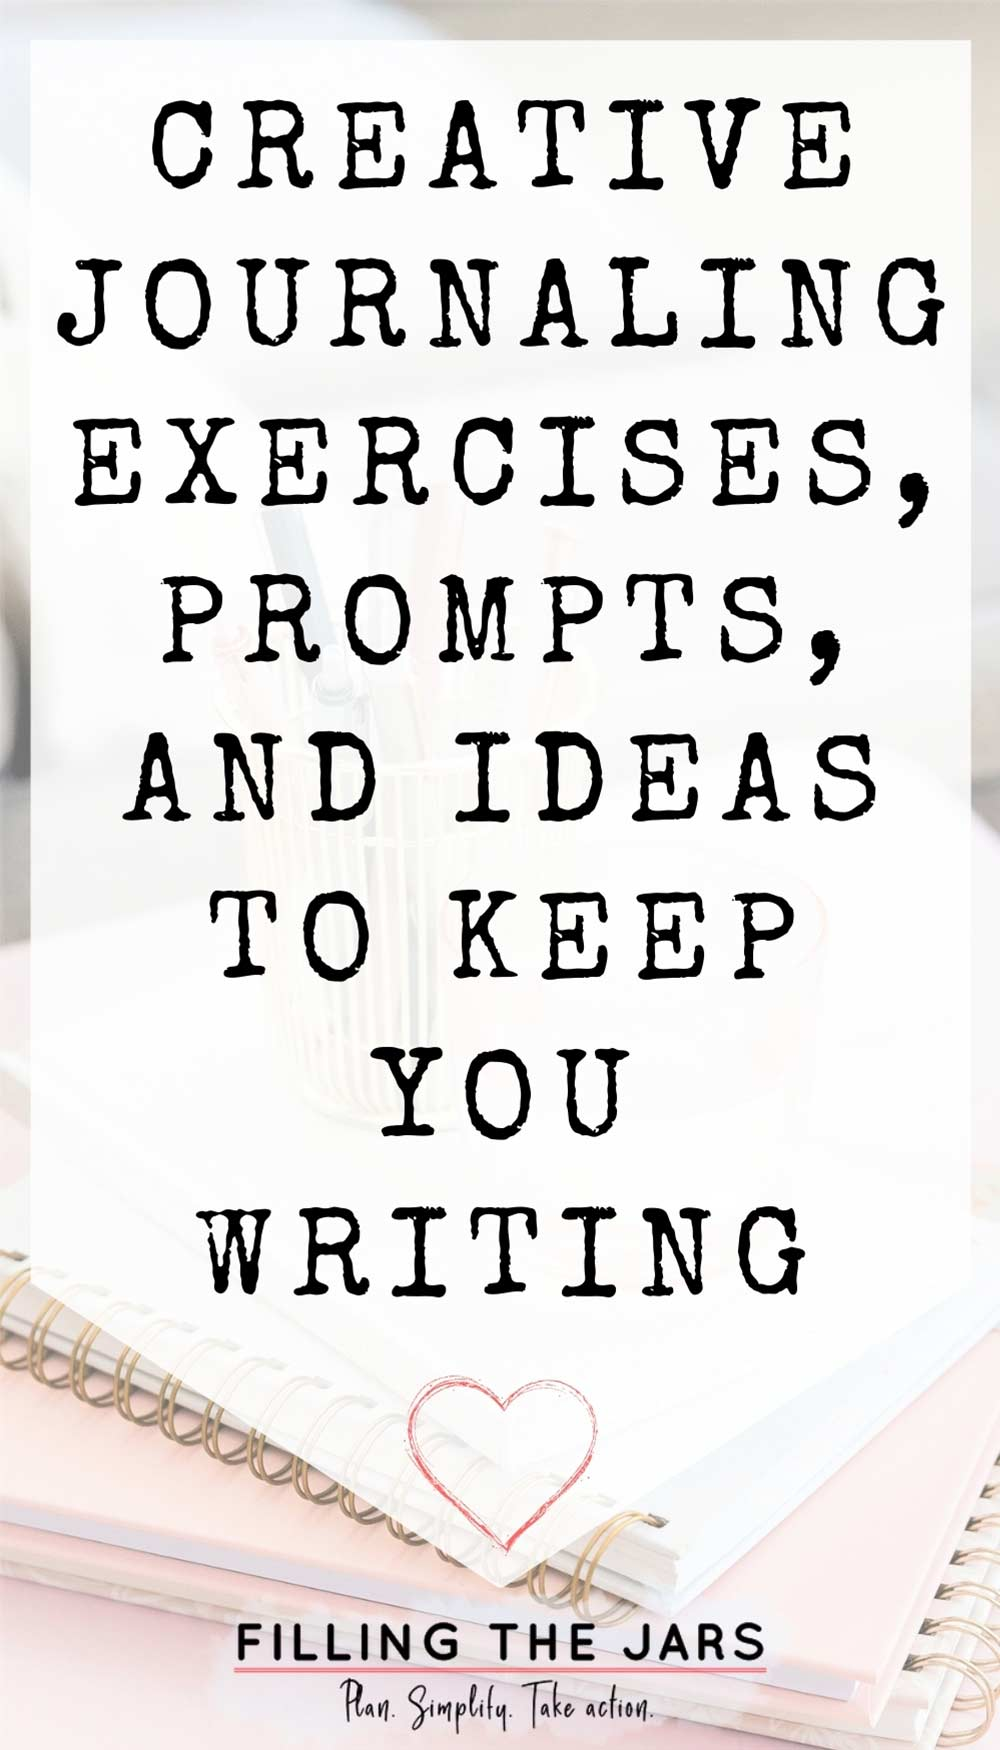 Text creative journaling exercises, prompts and ideas to keep you writing on white background over image of pink-tinted table and journal stack with glasses and gold-tone pen holder.